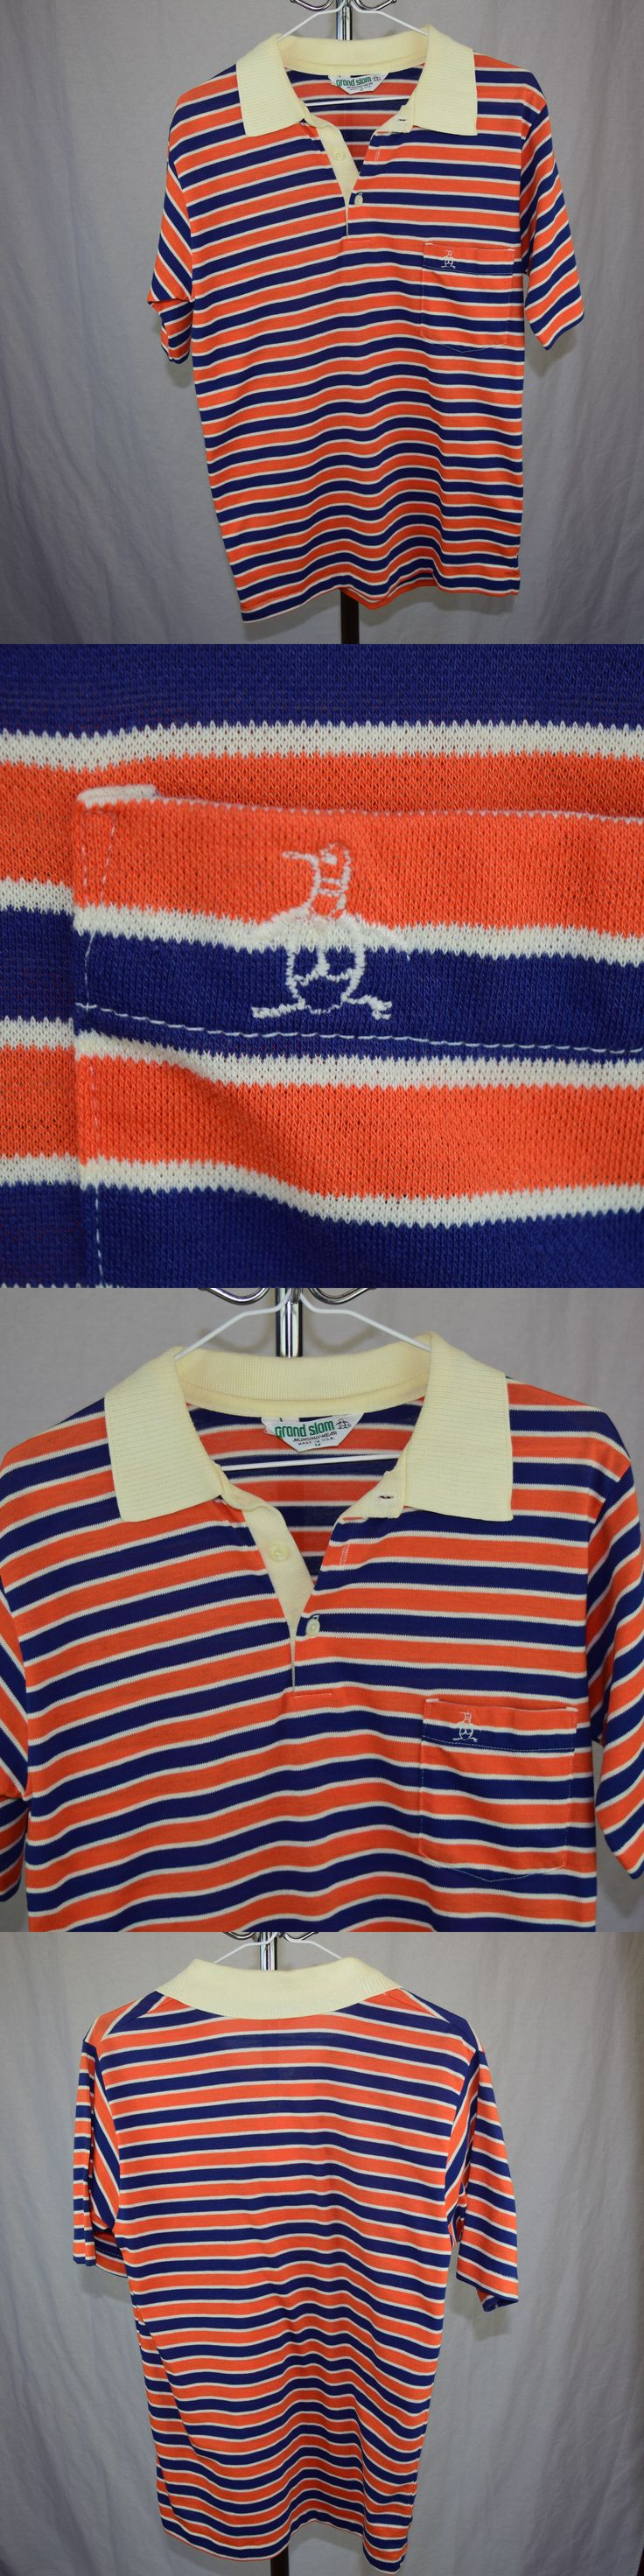 Casual Shirts 175770: Vintage Munsingwear Grand Slam Penguin Shirt 80S Striped Shirt S M Made Usa -> BUY IT NOW ONLY: $44.37 on eBay!